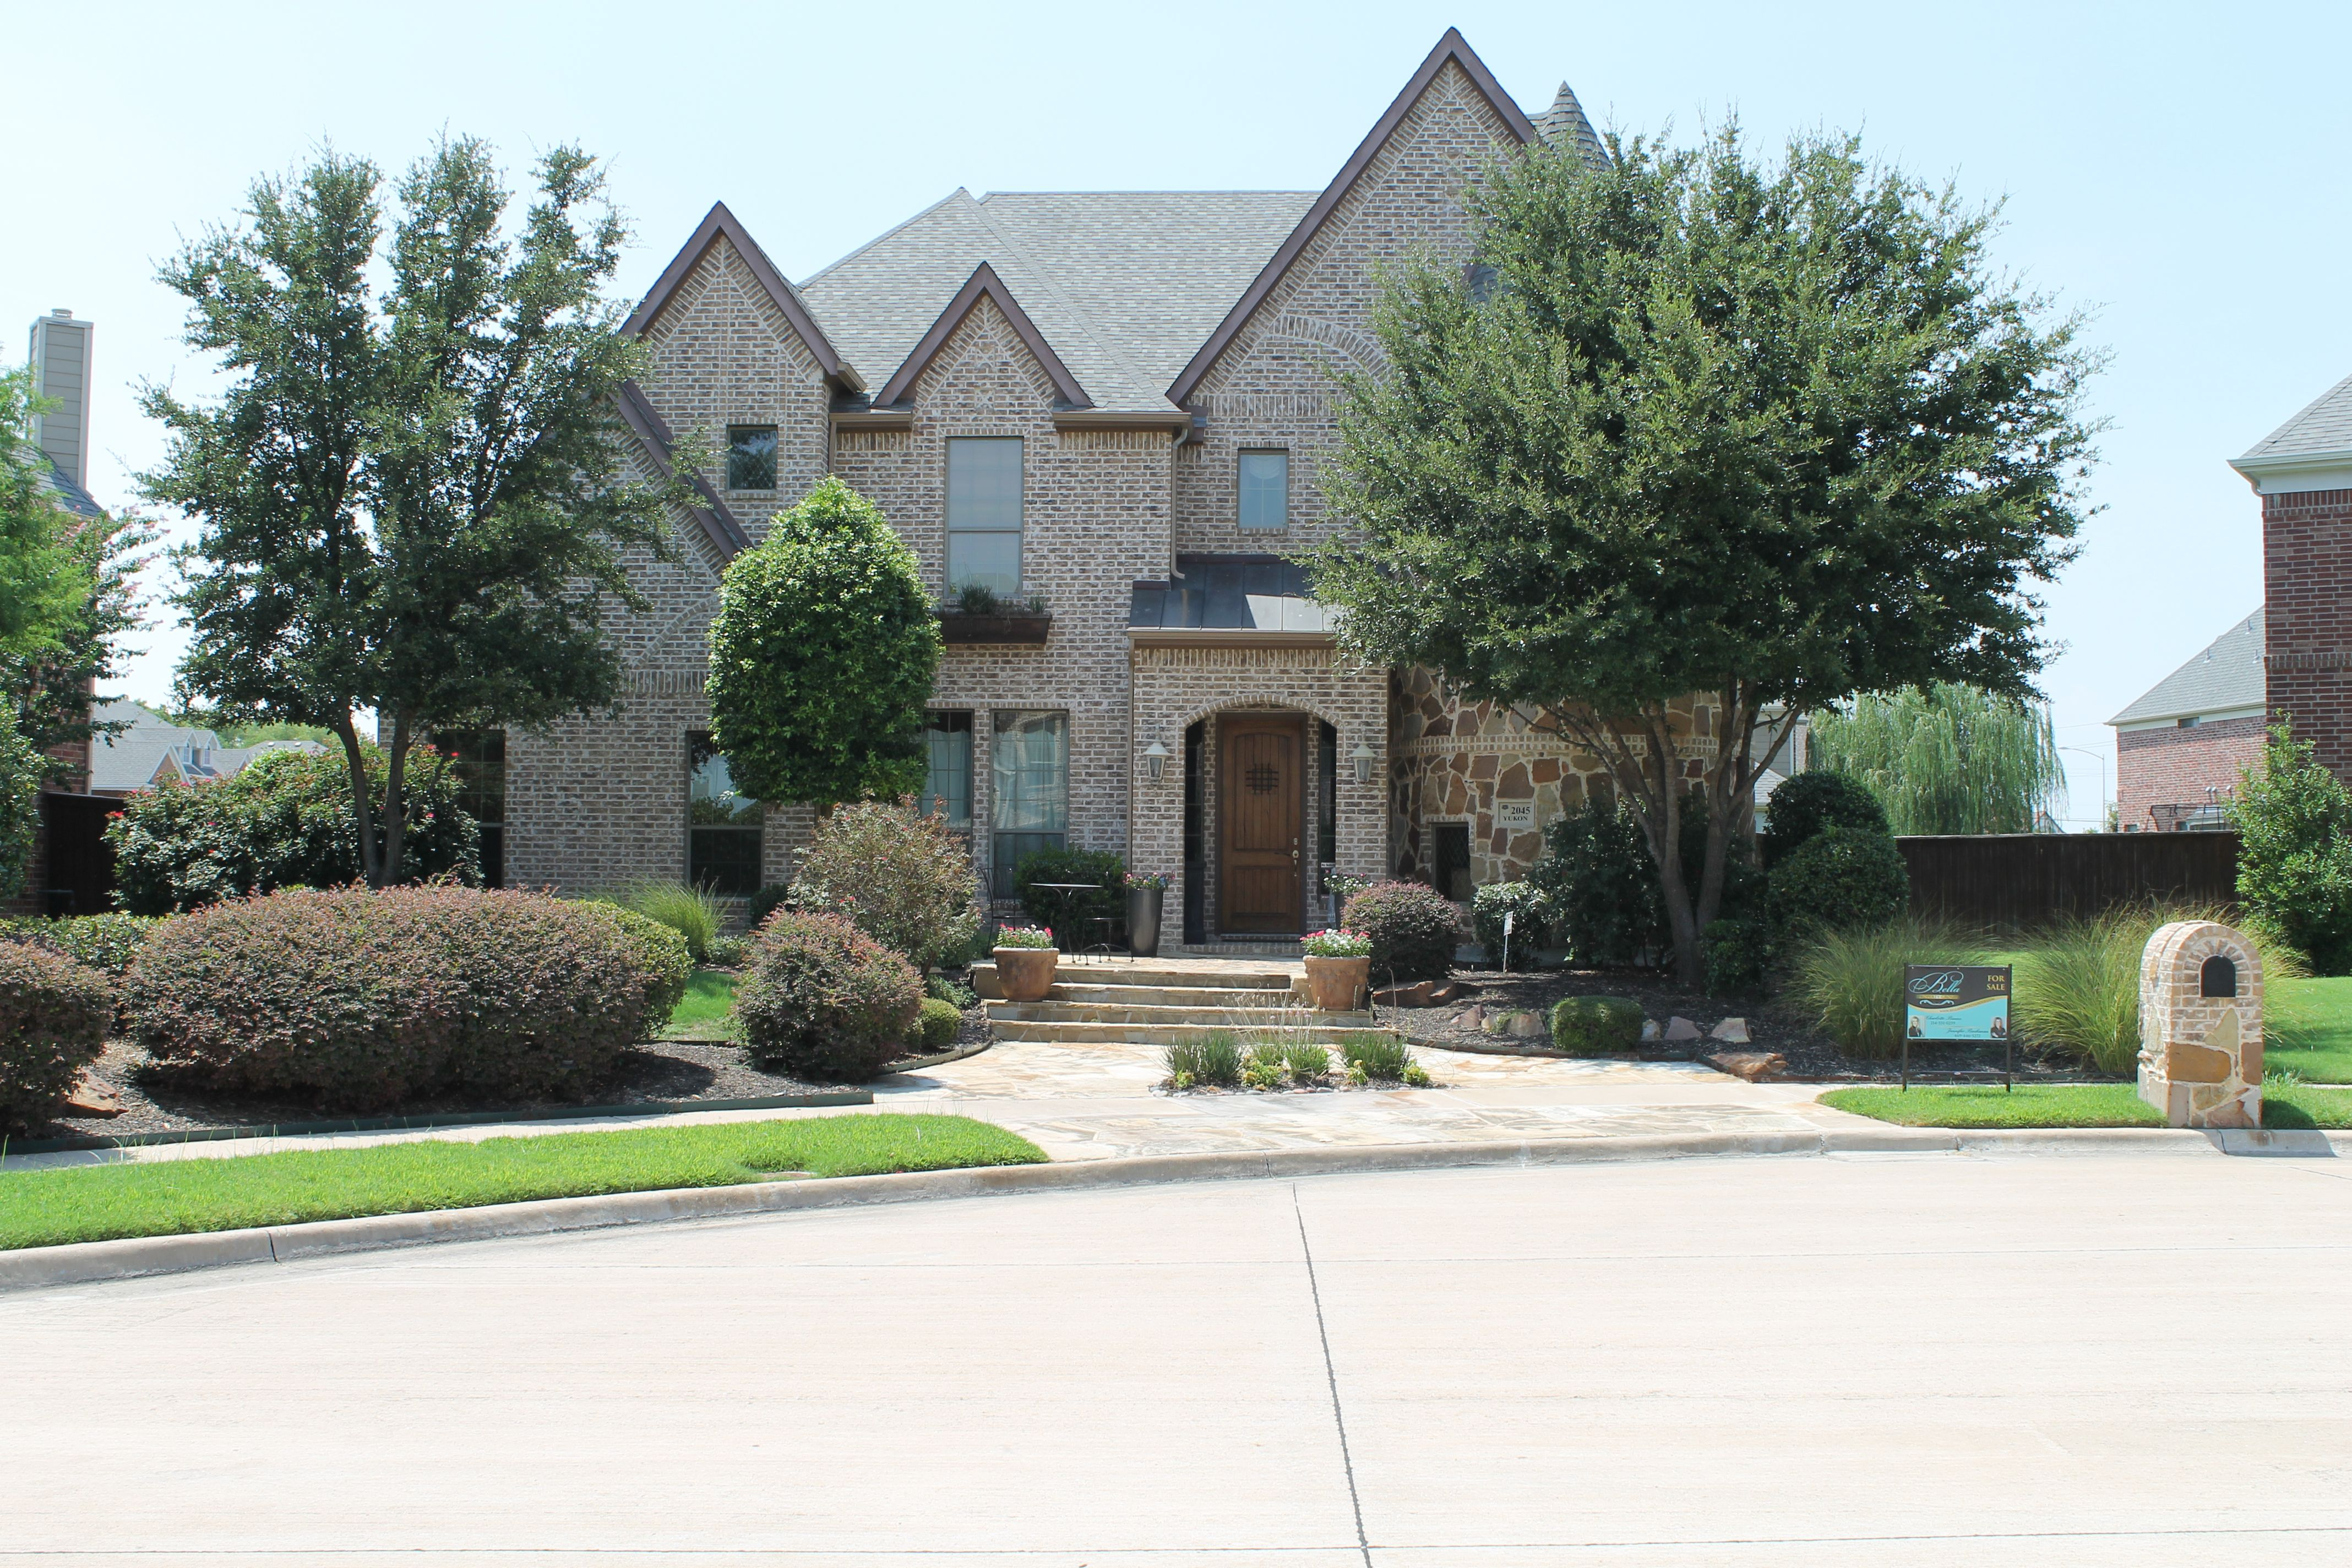 Property Listed and Sold Yukon Ct., Allen, Texas 2013